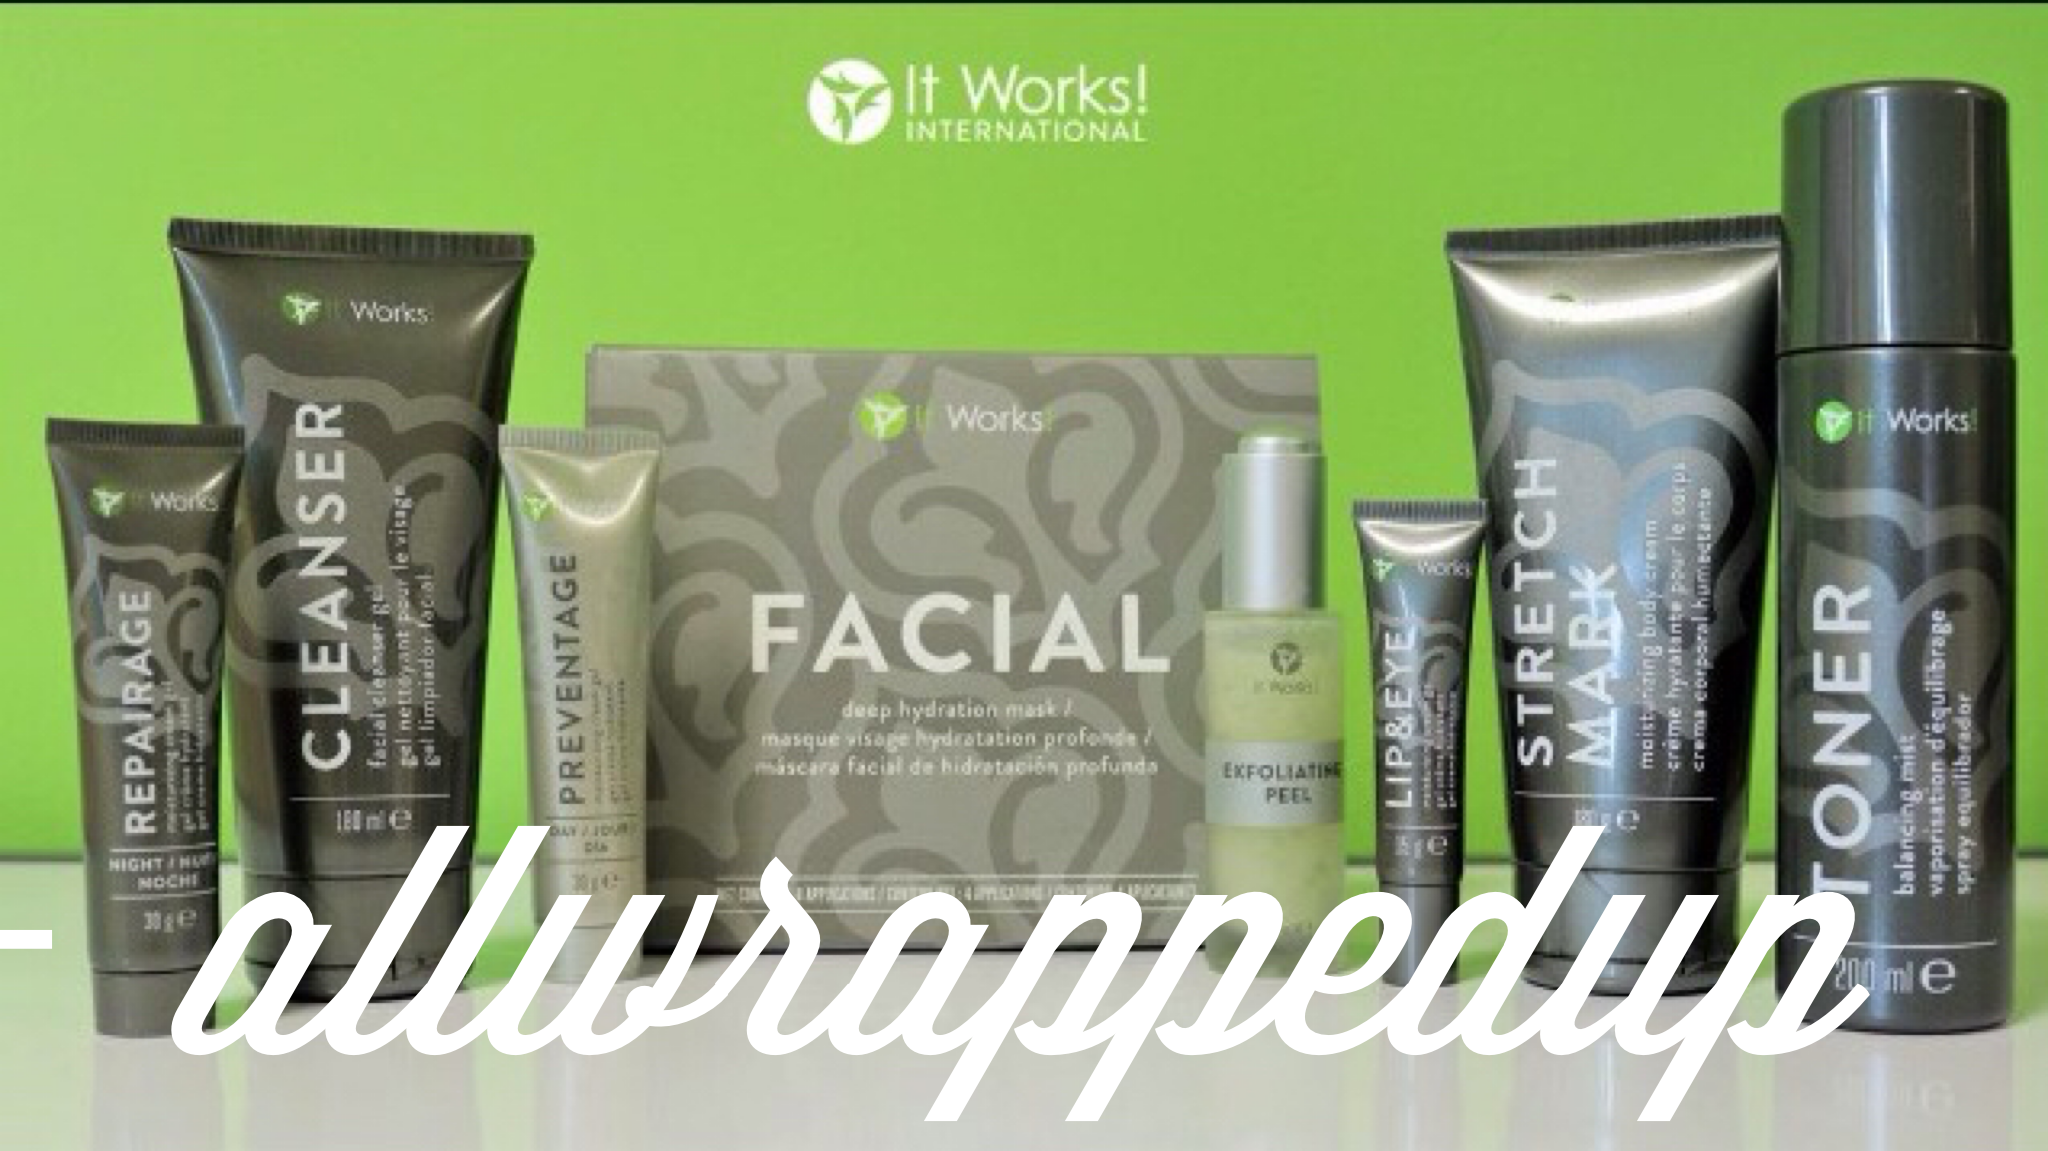 Your skin doesn't end at your neck, so why should your skin care routine? Experience luxurious skin hydration while minimising the appearance of stretch marks, fine lines, and other skin scarring with our full range of skin care products.   · Tighten, tone, and firm to give your face a lifted look · Soften the appearance of those fine lines and wrinkles · Soothe and smooth through continuous hydration · Wake up tired skin with a burst of refreshing botanicals